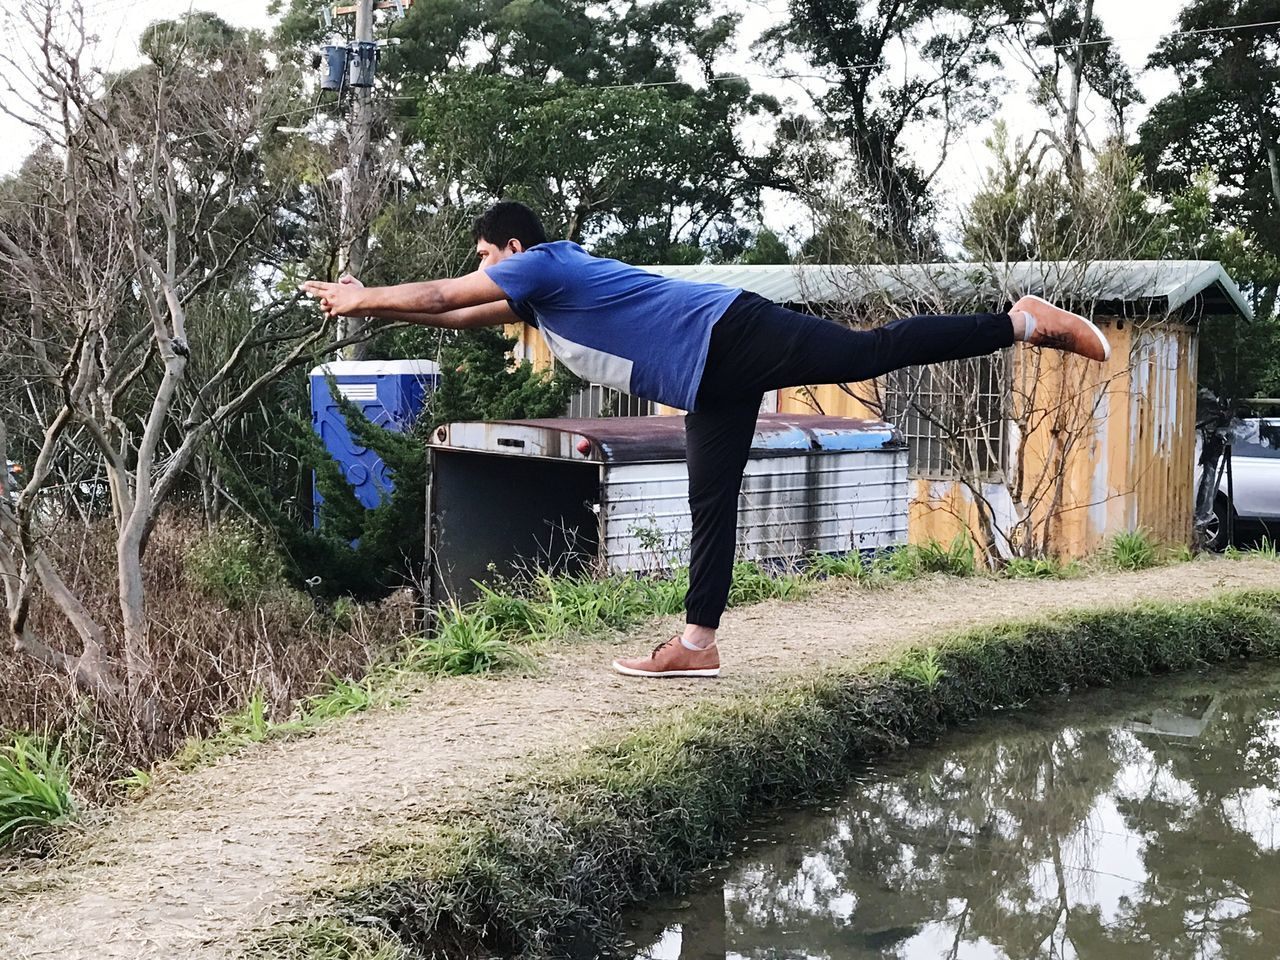 One Person Lifestyles Full Length Only Men Real People One Man Only Adults Only Leisure Activity Men Tree Day Outdoors Adult Sport Sports Training Young Adult People Grass Nature Yogainspiration Yogatime Yoga Practice Yogalove Yogaeverydamnday